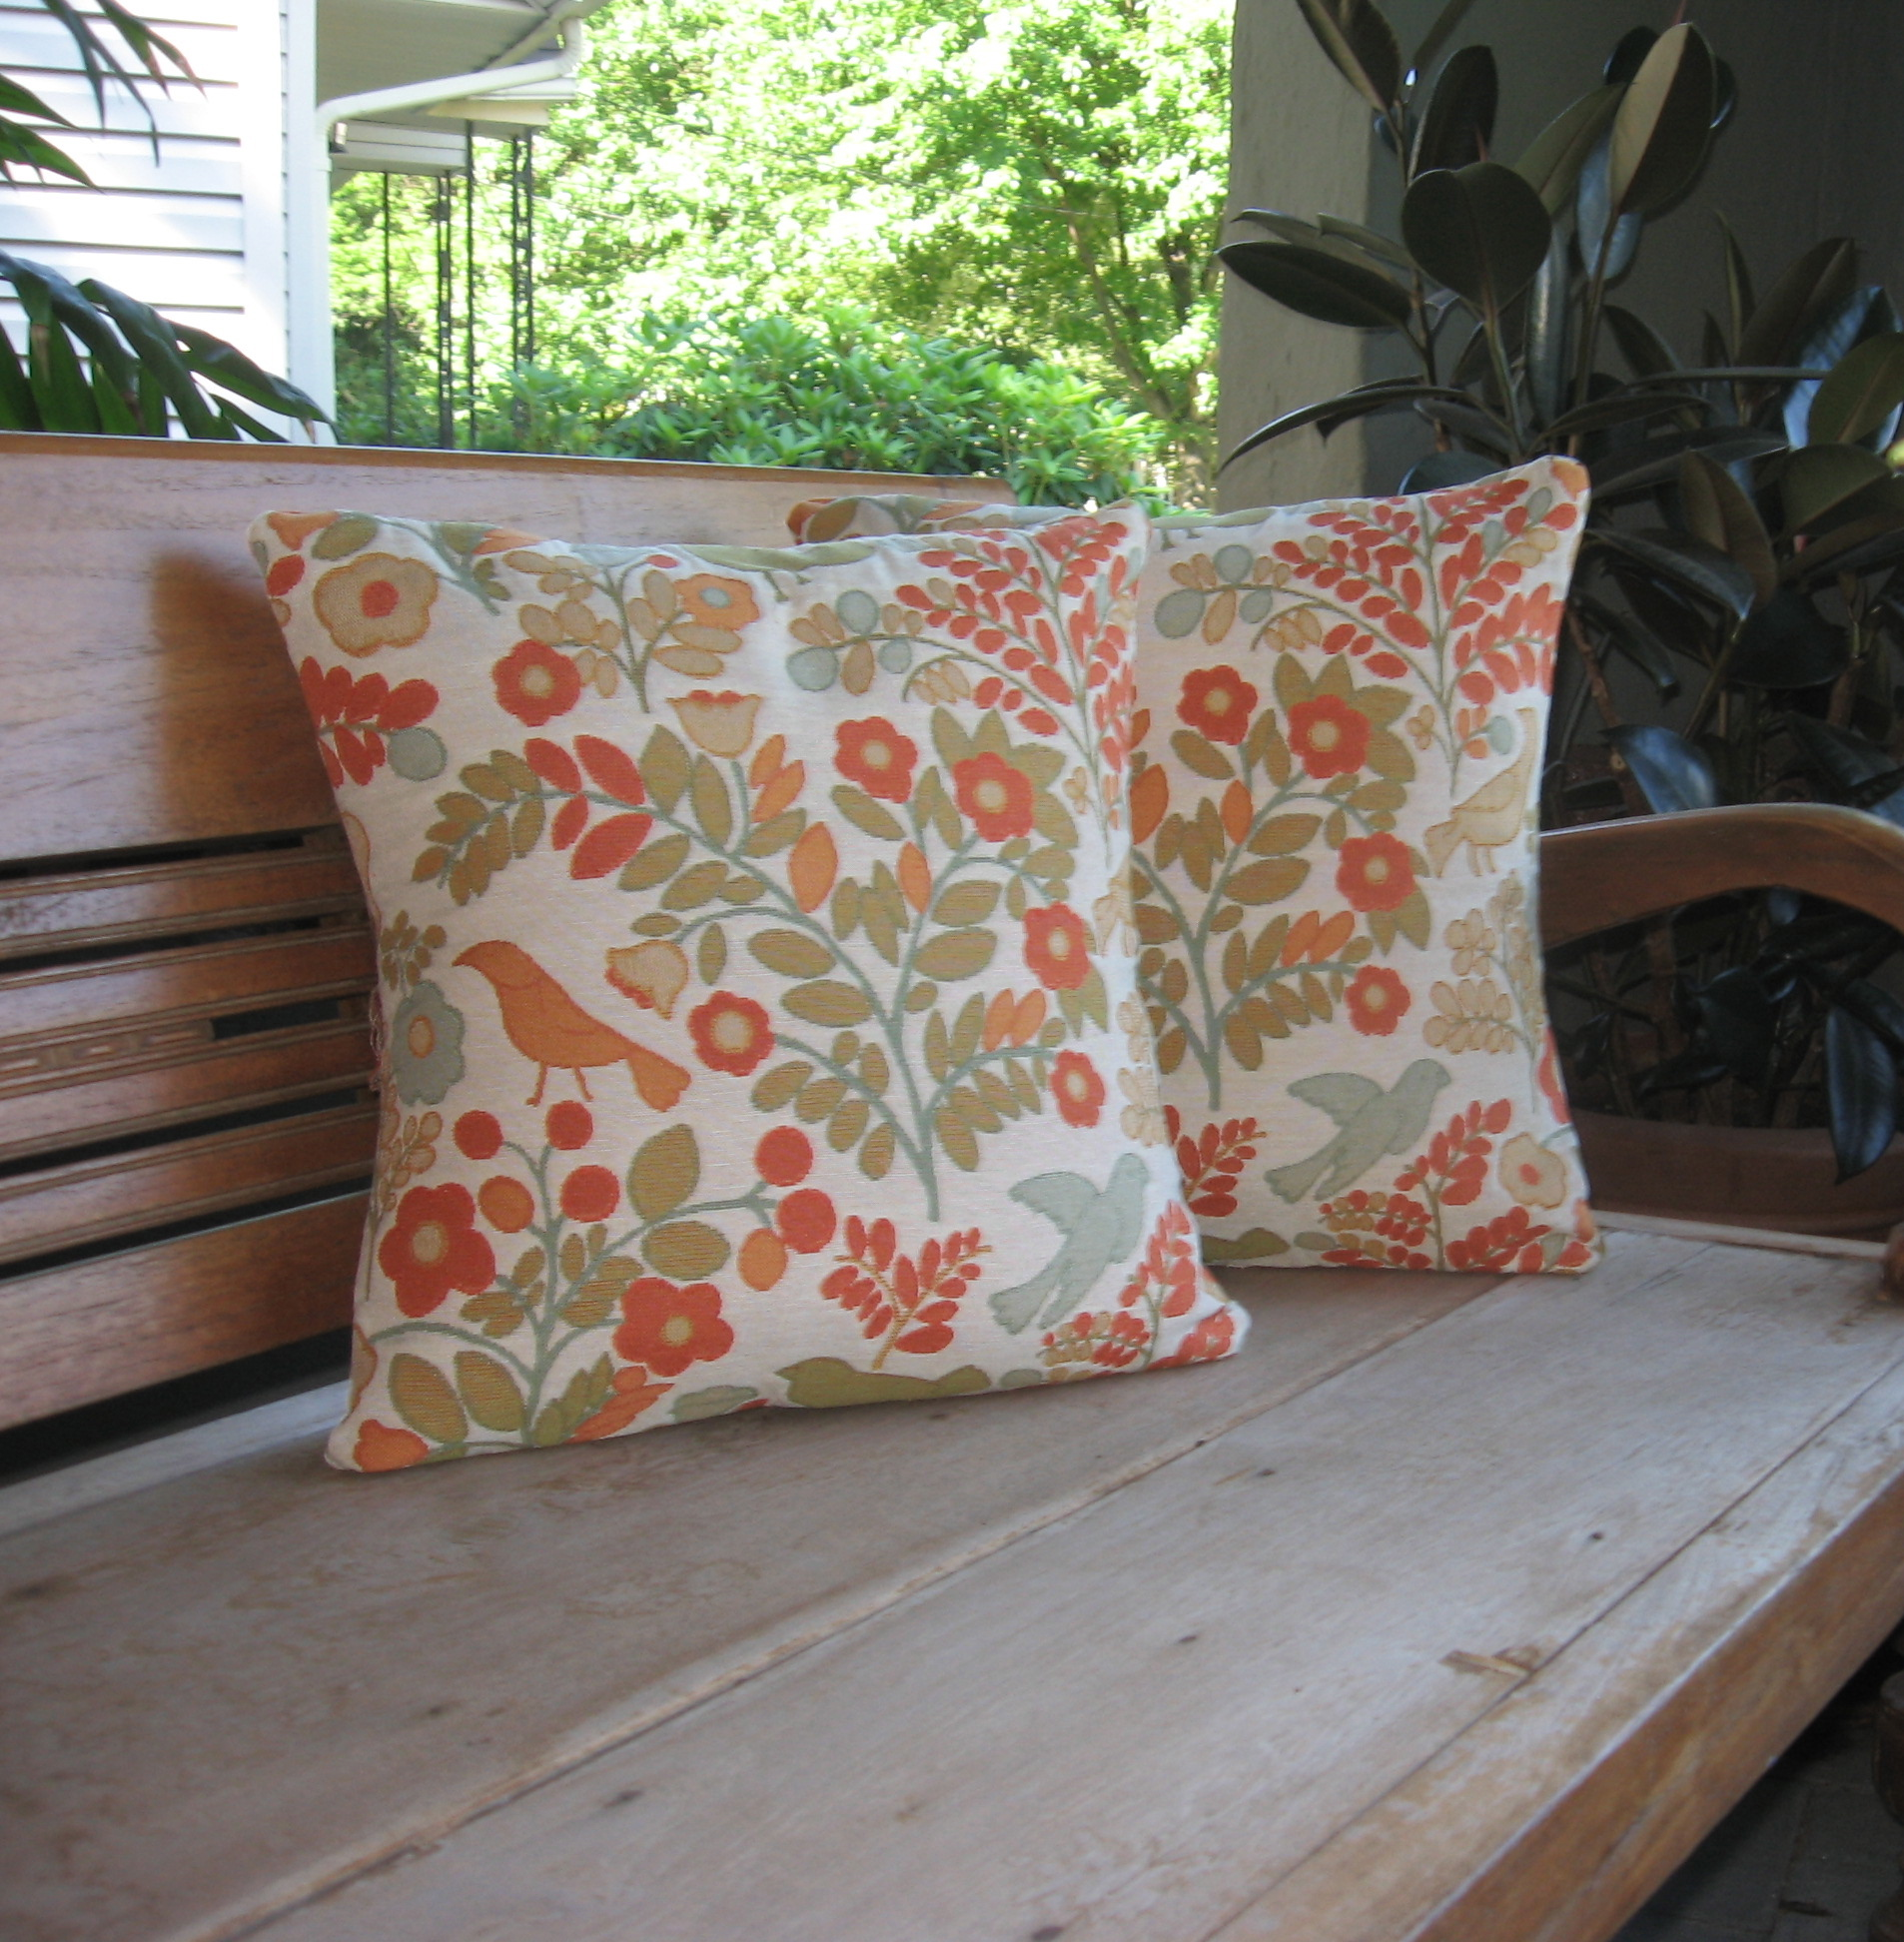 Our Crafty Home | New Pillows for the Porch